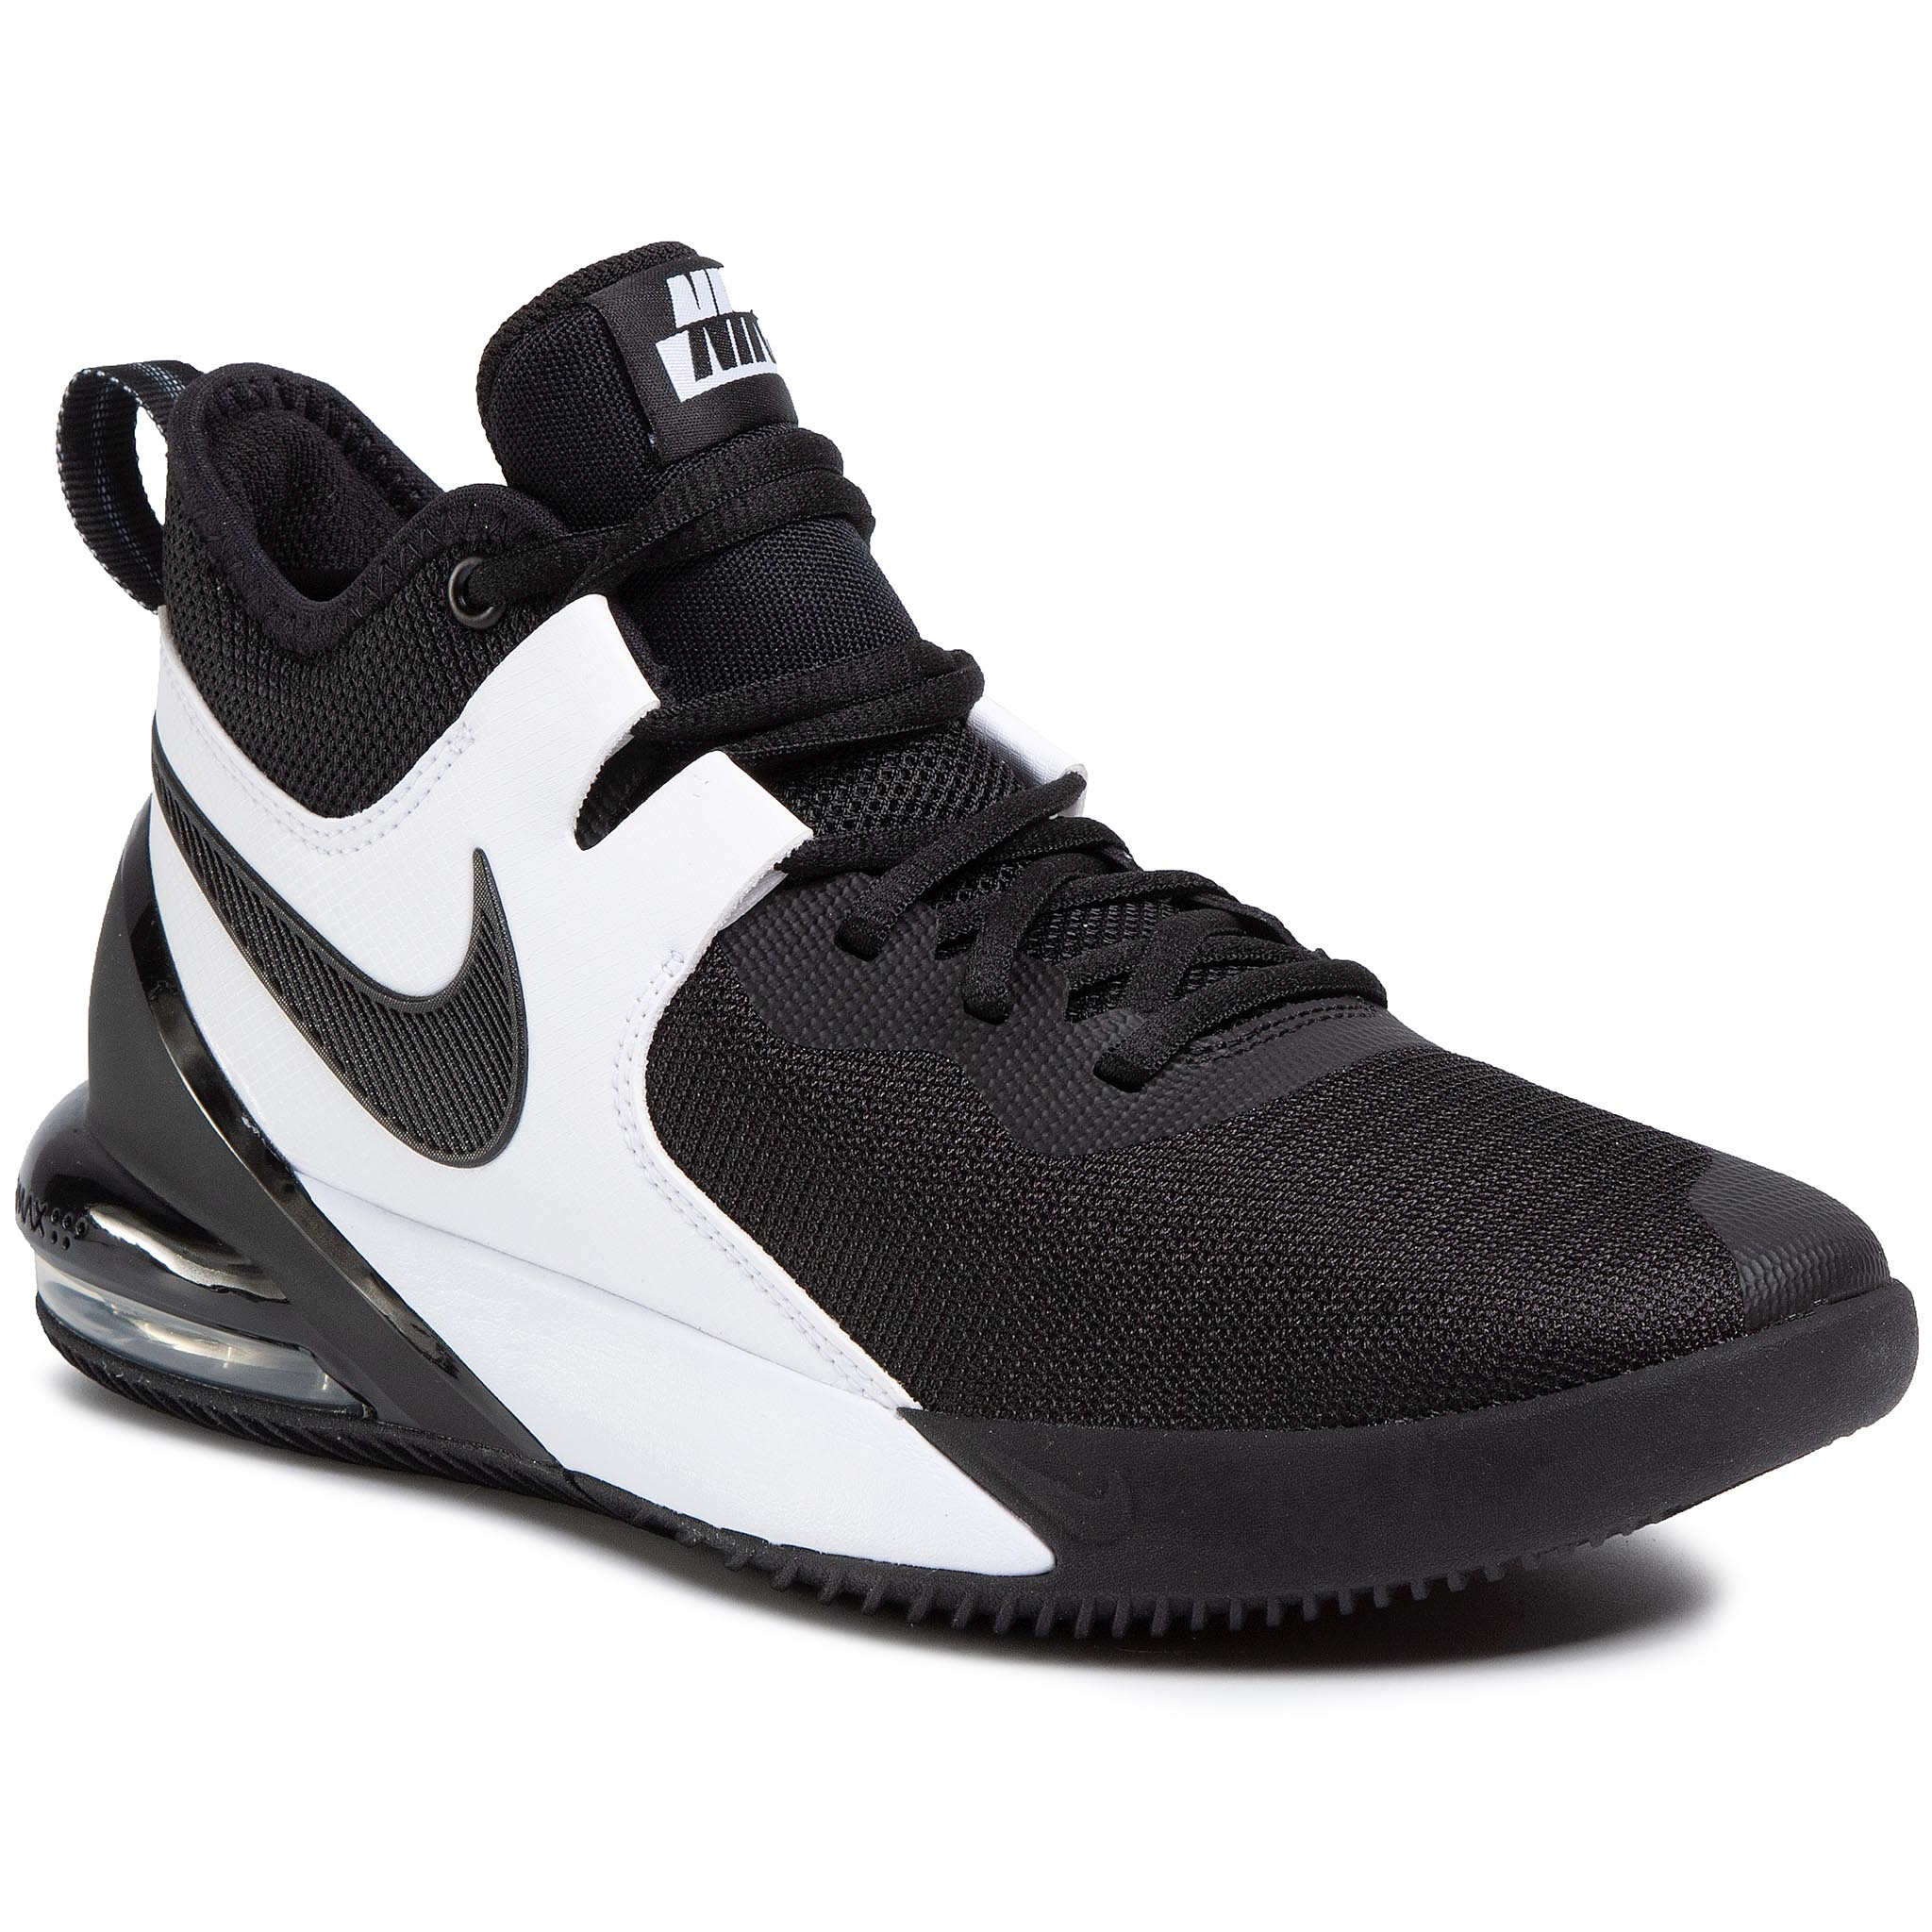 Pantofi Nike - Air Max Impact Ci1396 004 Black/Black/White imagine epantofi.ro 2021